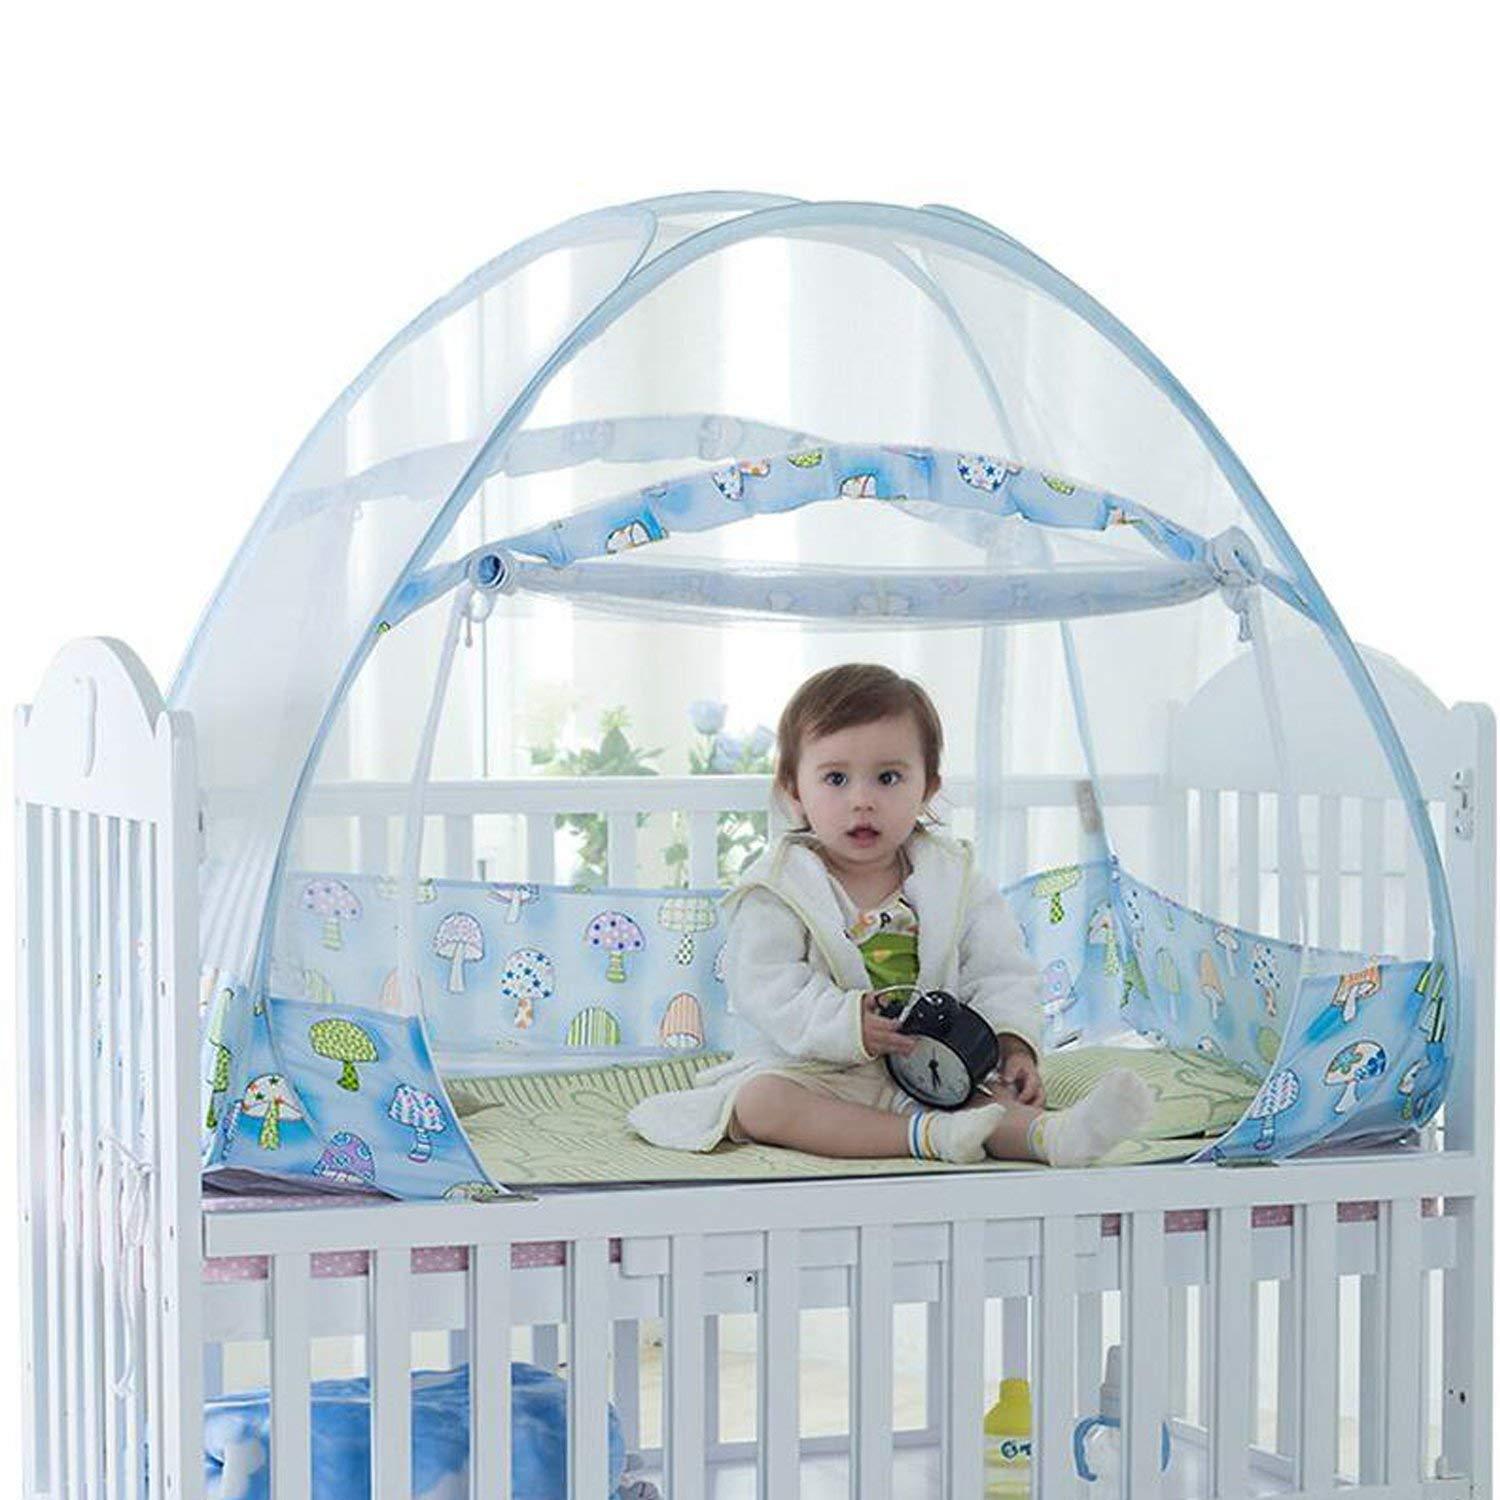 Baby Crib Tent Safety Mosquito Net ,Pop Up Canopy Cover For Kids Bed,Toddler Bed  Foldable Dome Canopy Netting